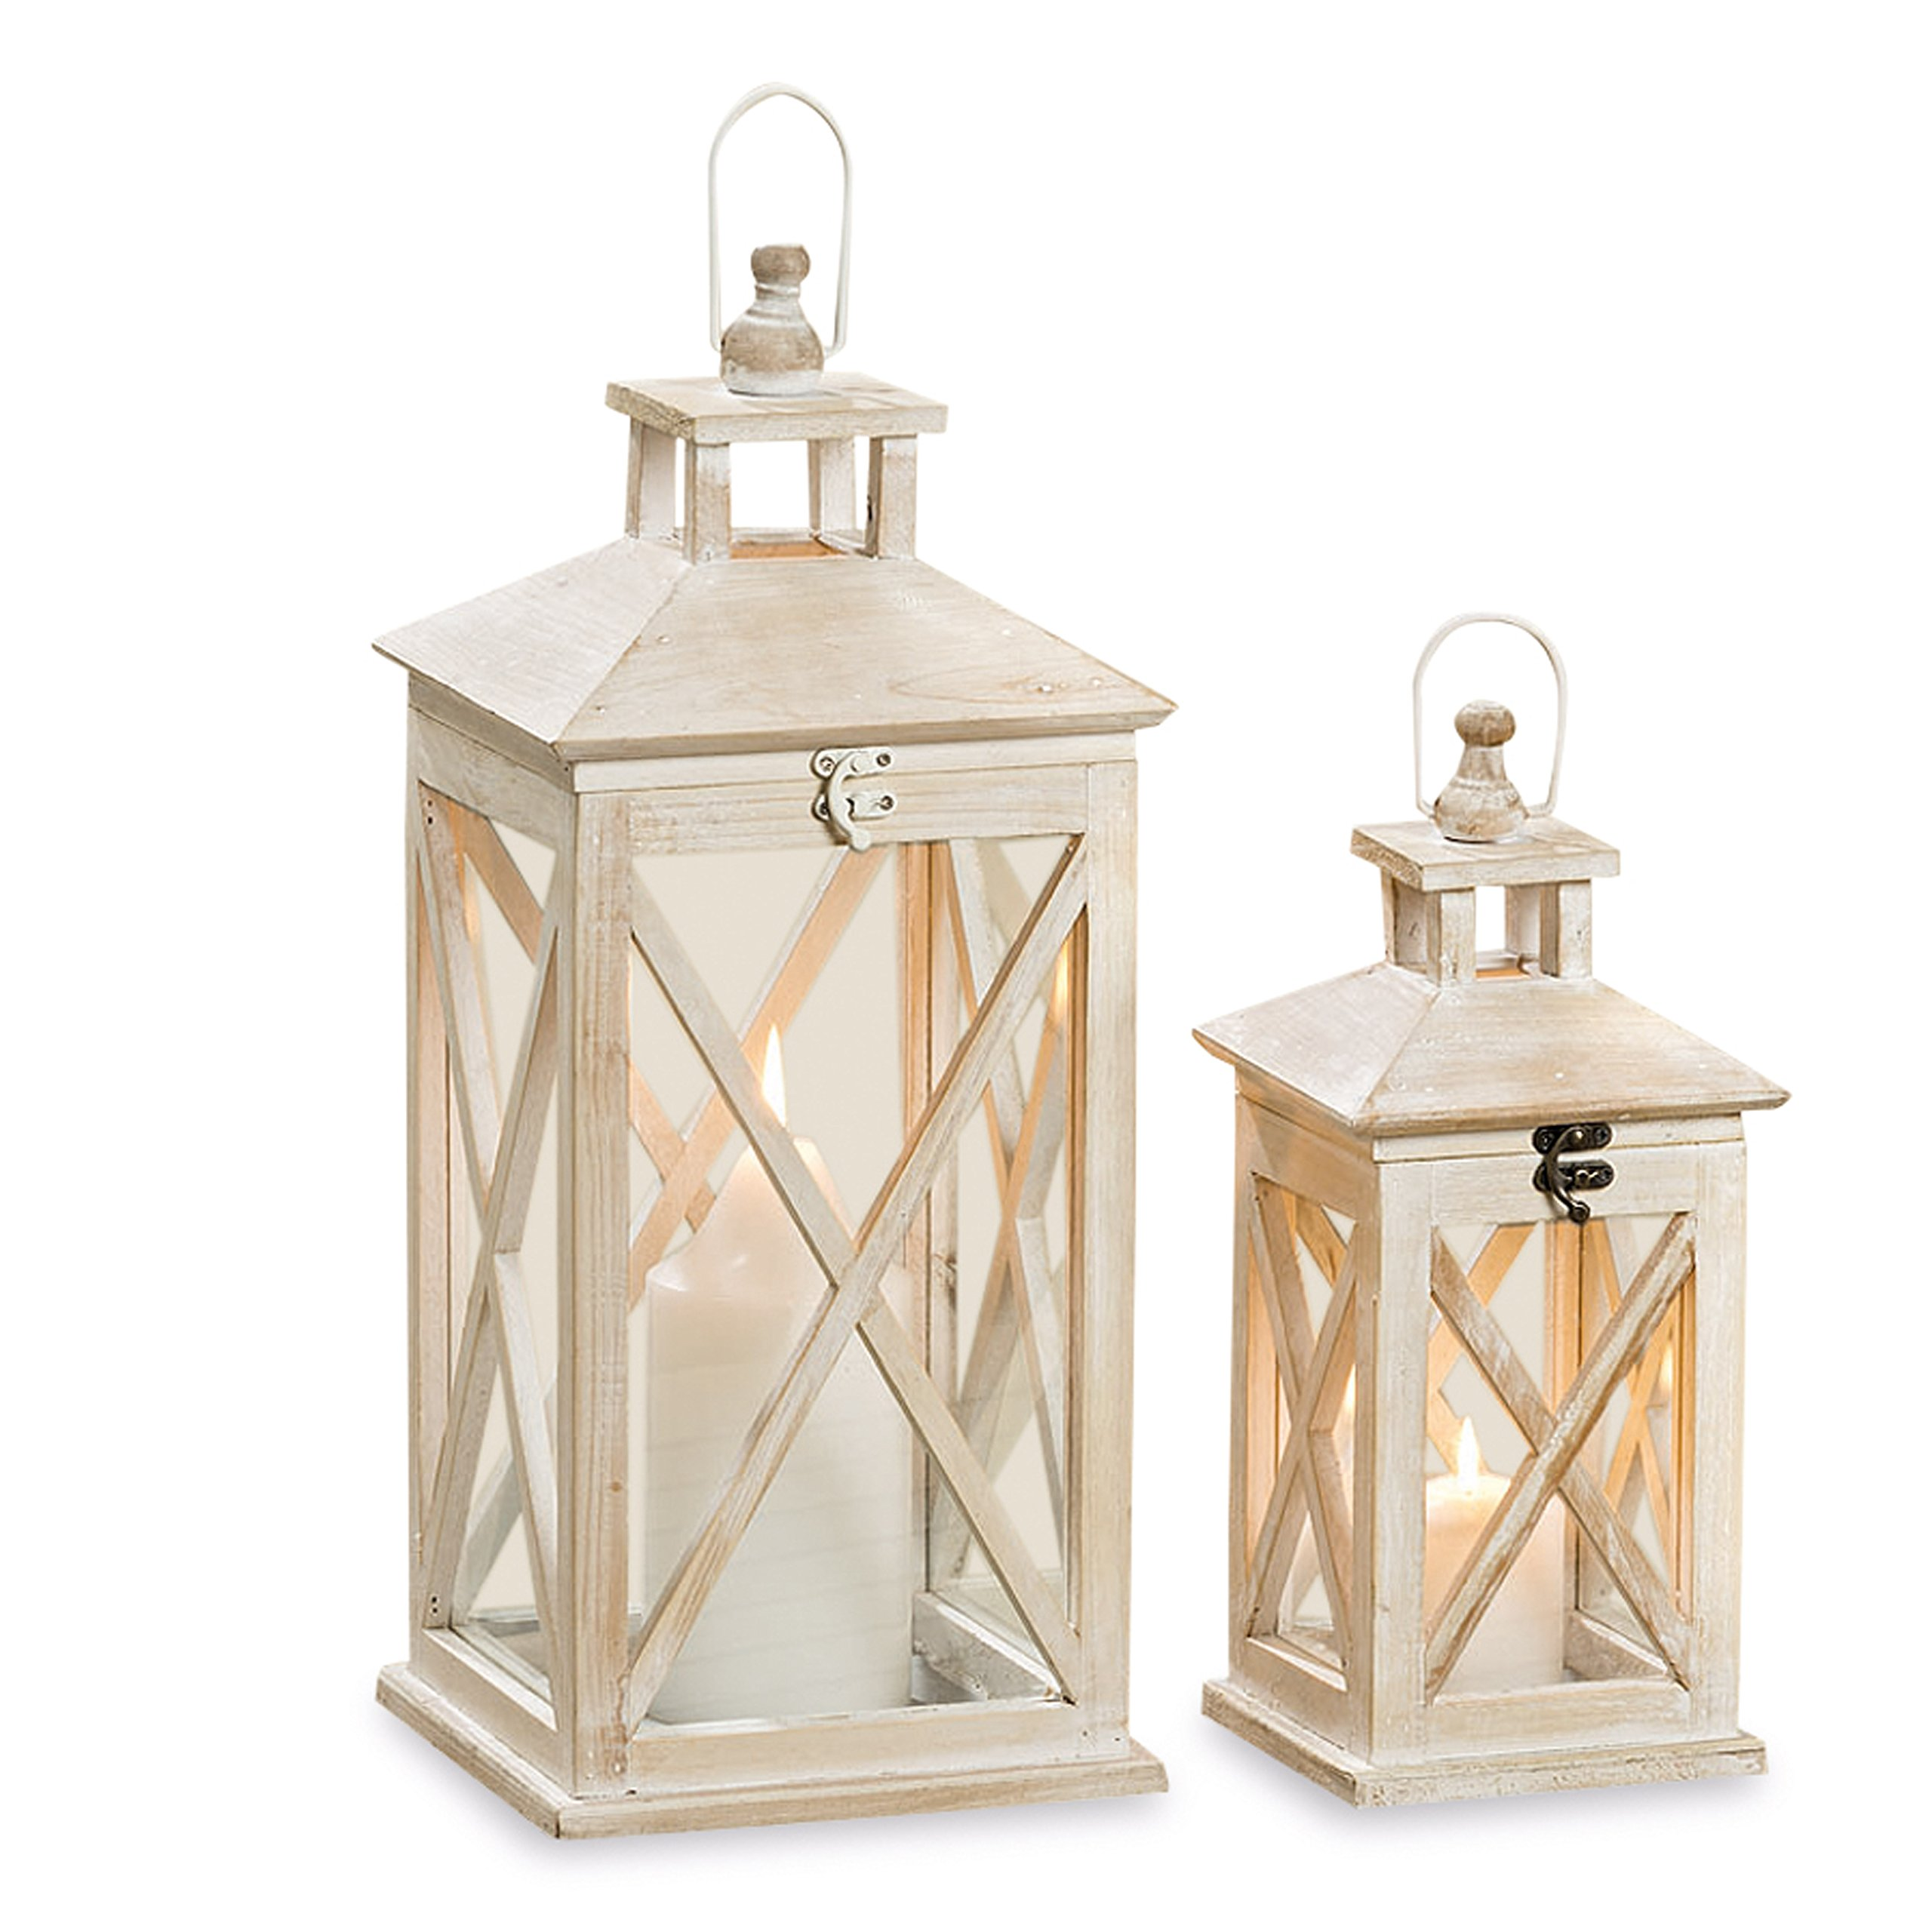 The Cape Cod Farmhouse Candle Lanterns, Set of 2, White Washed Wood, Top Opening, Cross Posts, Glass Panels, Galvanized Floor, 13 and 19 3/4 Inches Tall, By Whole House Worlds